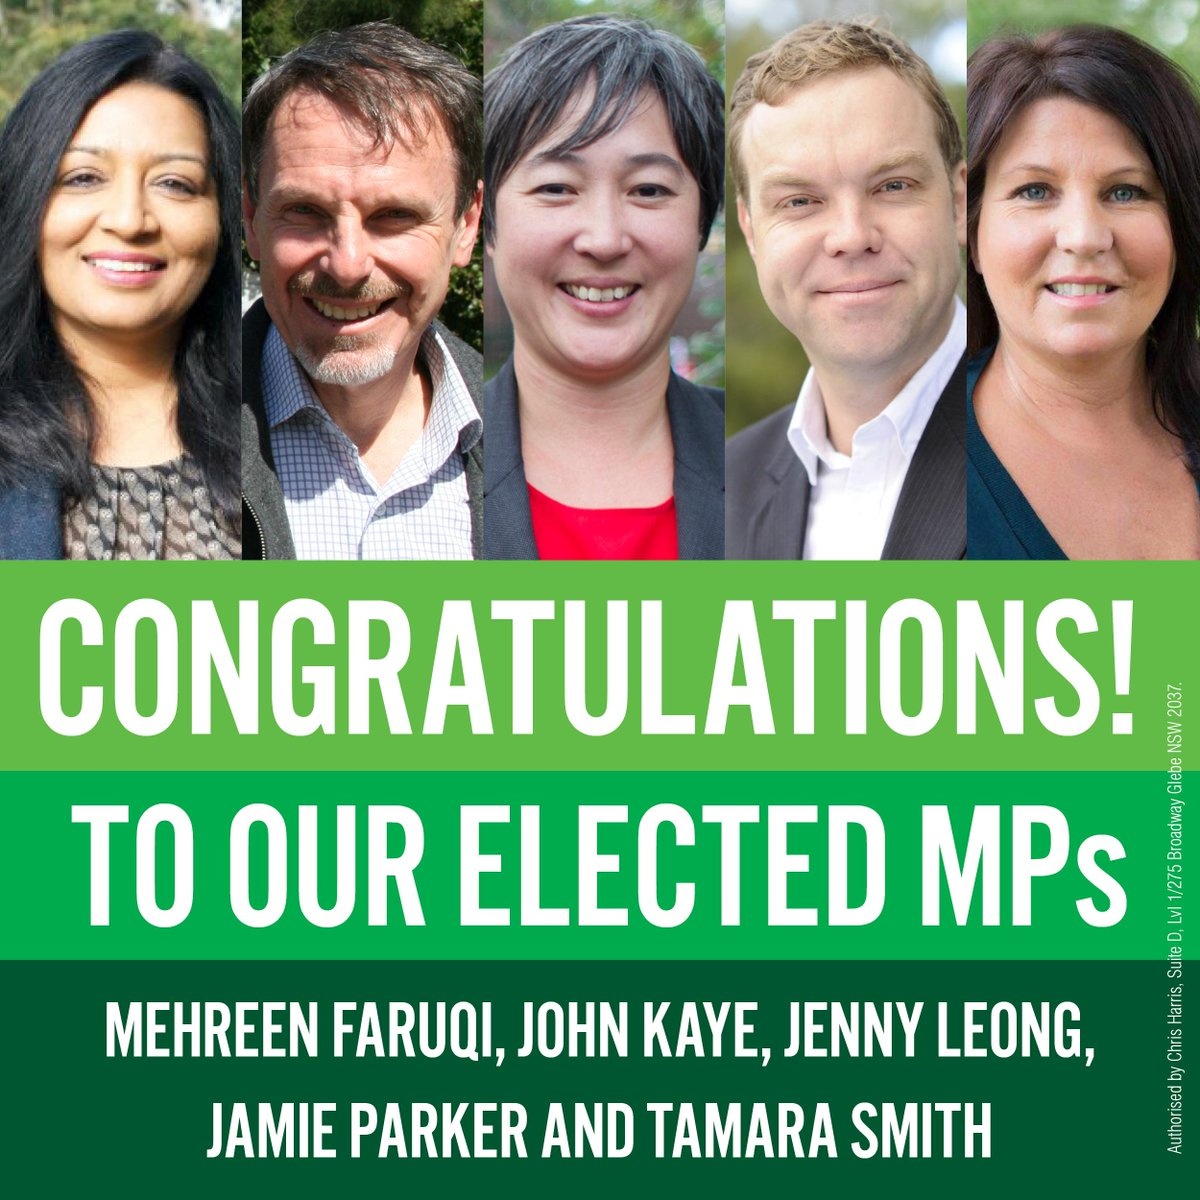 Congrats to @JennyLeong, @GreensJamieP, @GreensTamara, @JohnKGreens & @MehreenFaruqi! Too close to call 4 @GreenGuise http://t.co/Q2LiGMcusq